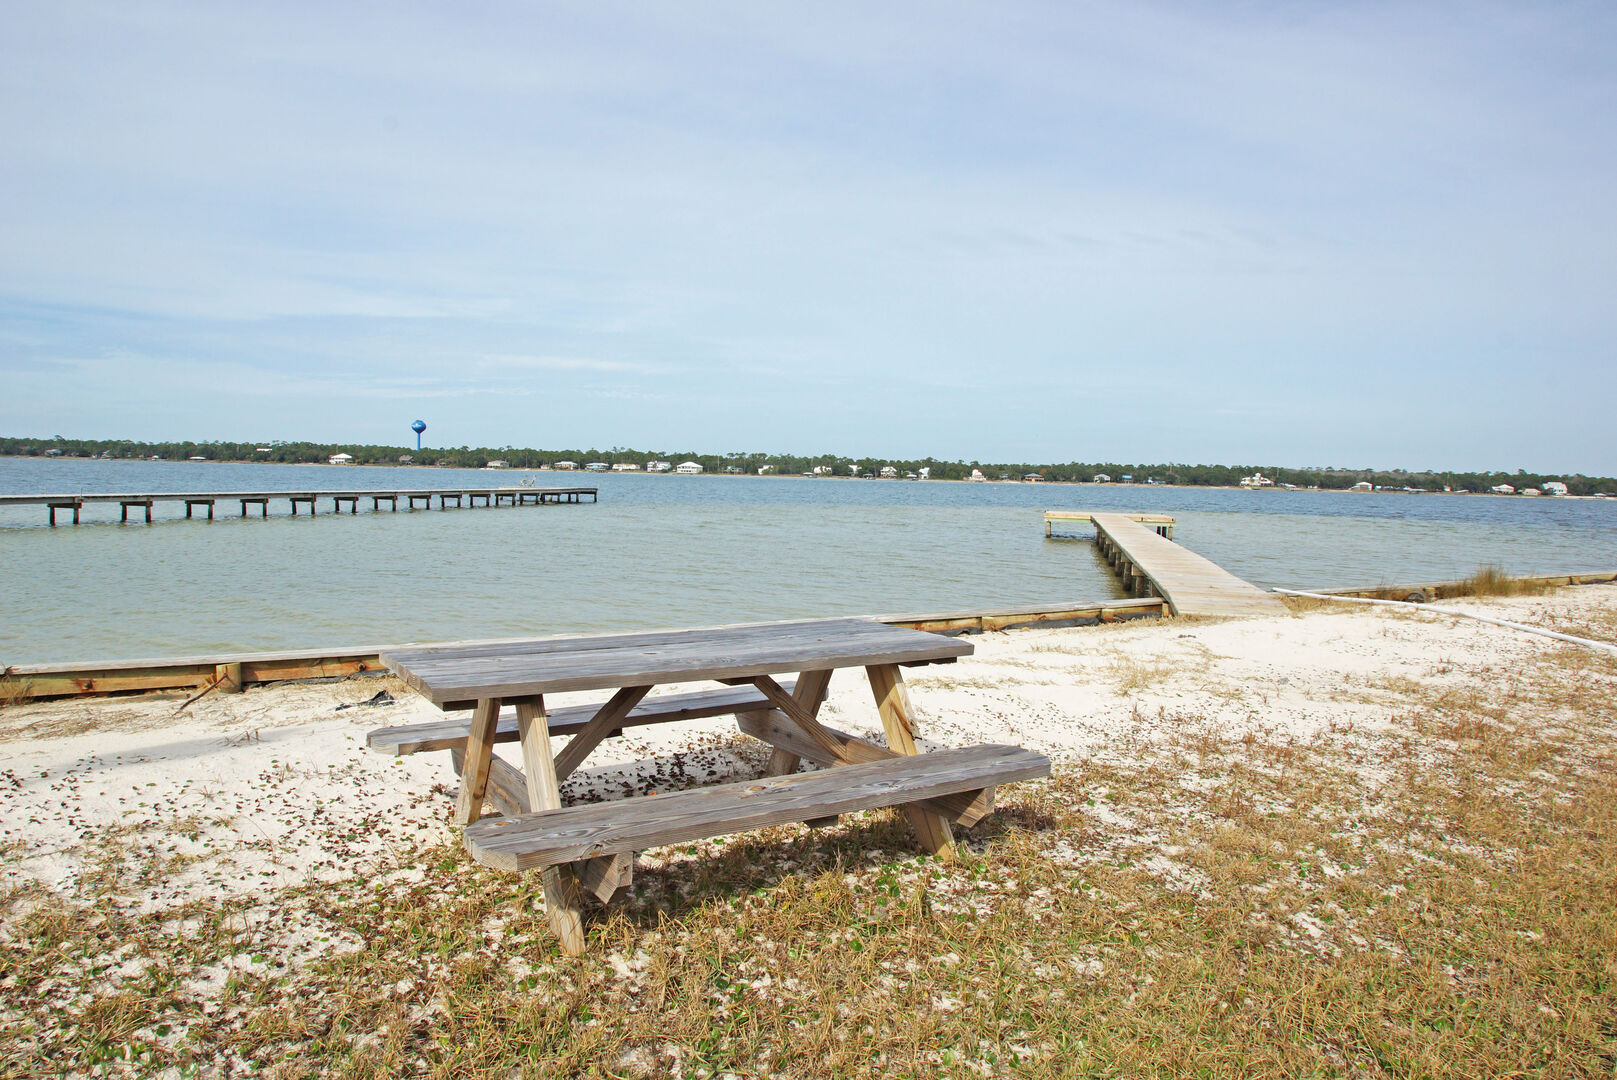 The Pier on the Lagoon, and a Picnic Table.